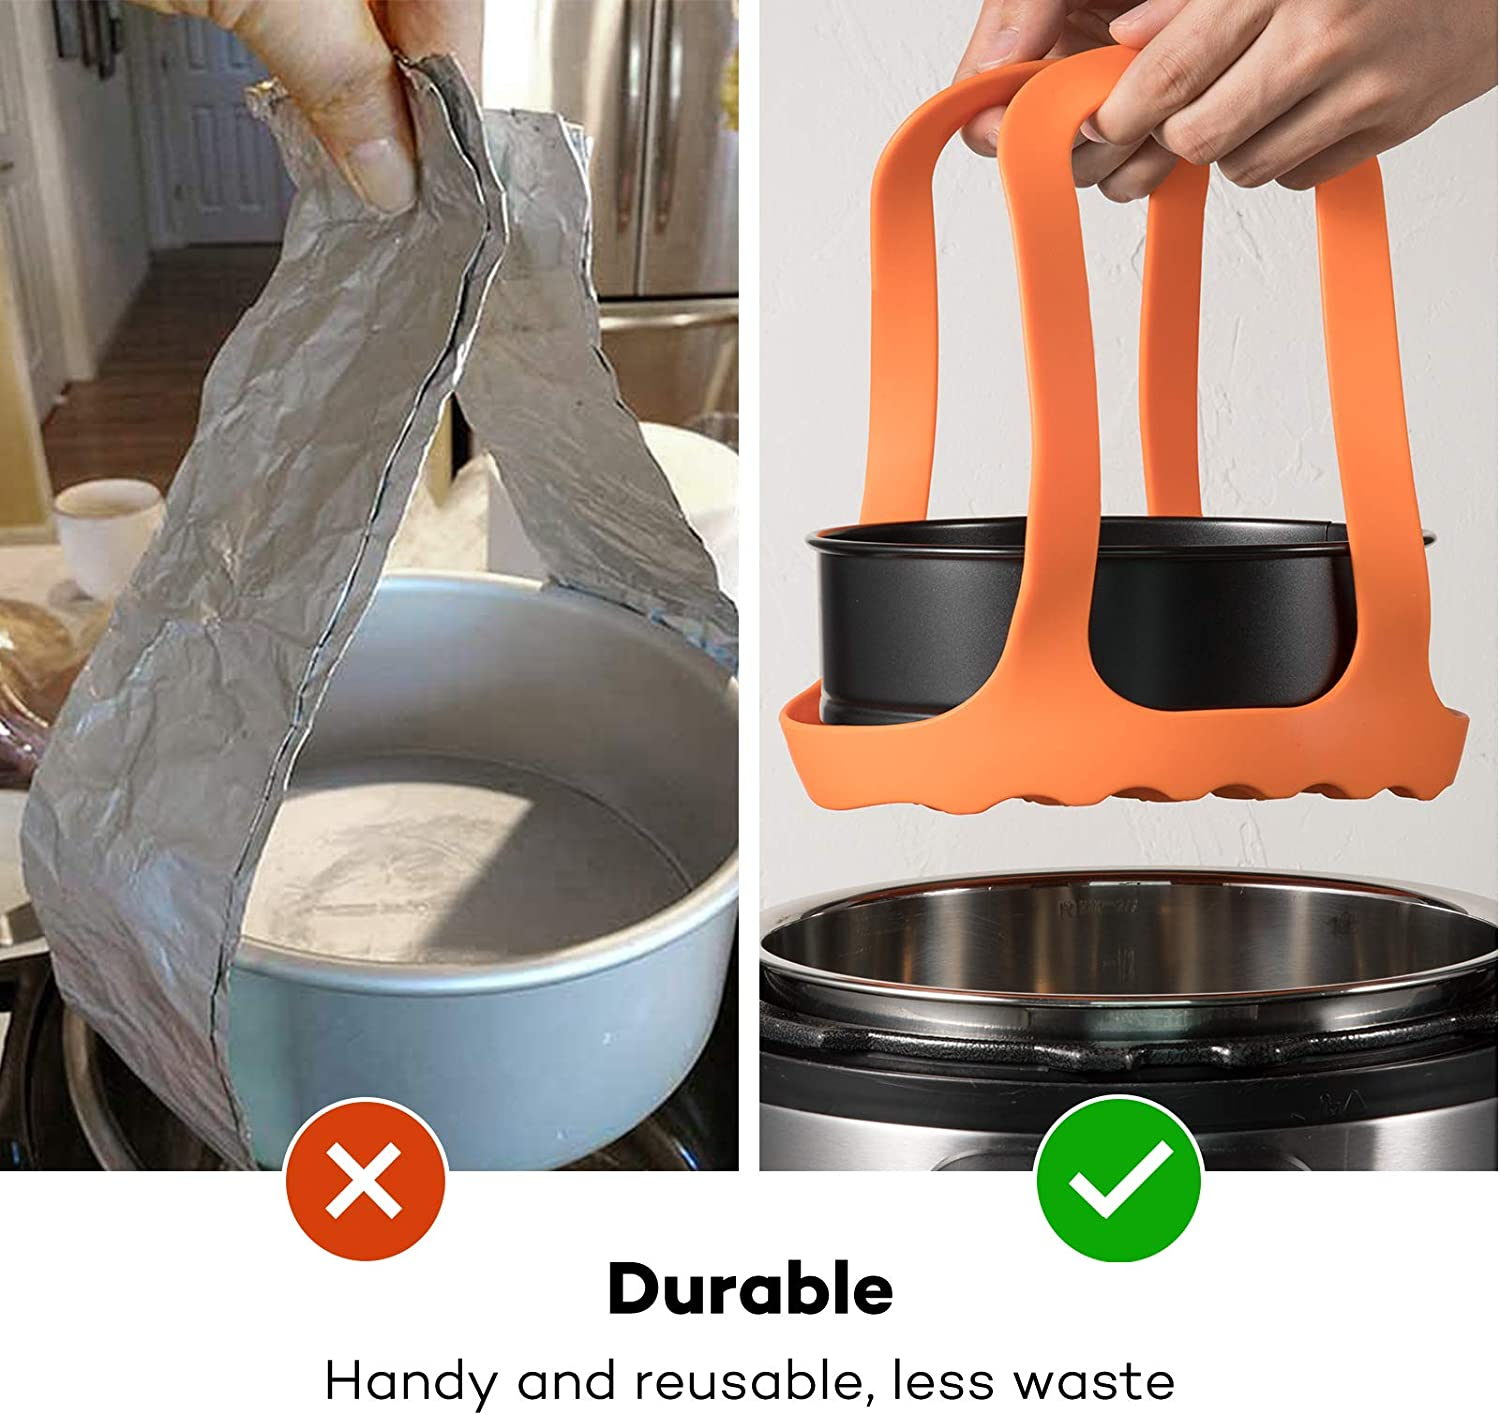 Ninja Foodi 6.5 Qt 8 Qt and Other Brand Pressure Cookers Goldlion Silicone Sling Lifter Accessories Compatible with Instant Pot 6 Qt and 8 Qt Organge